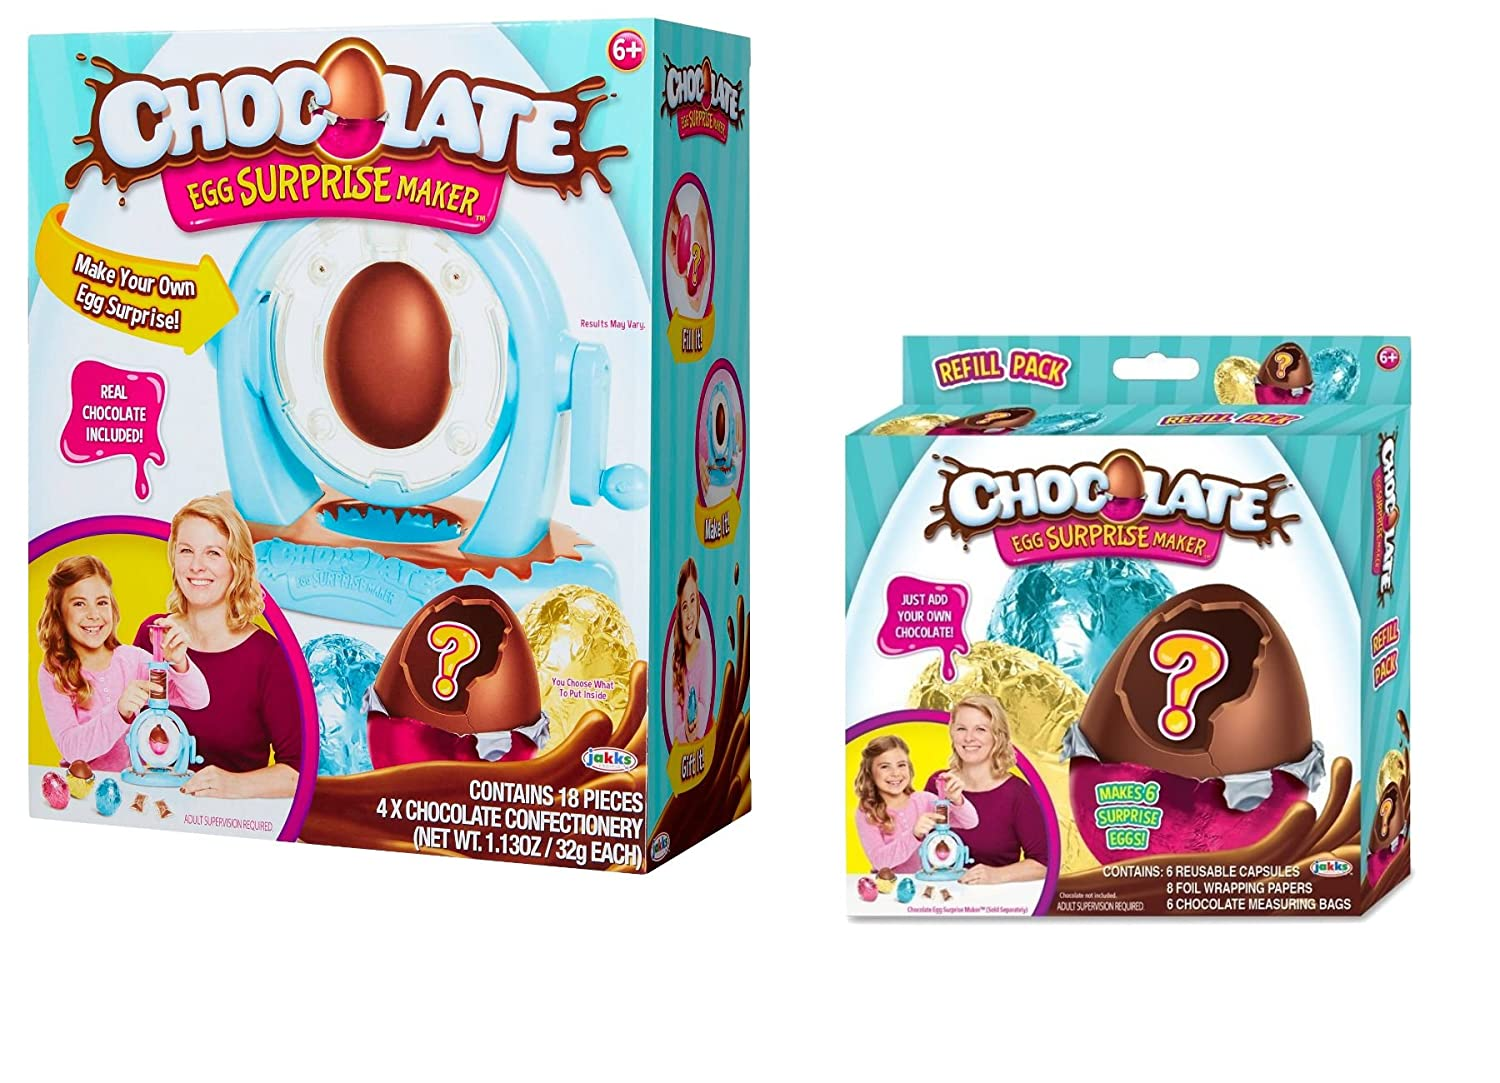 Chocolate Egg Surprise Maker Bundle with Chocolate Egg Refill Pack   B074V1KZ7Q